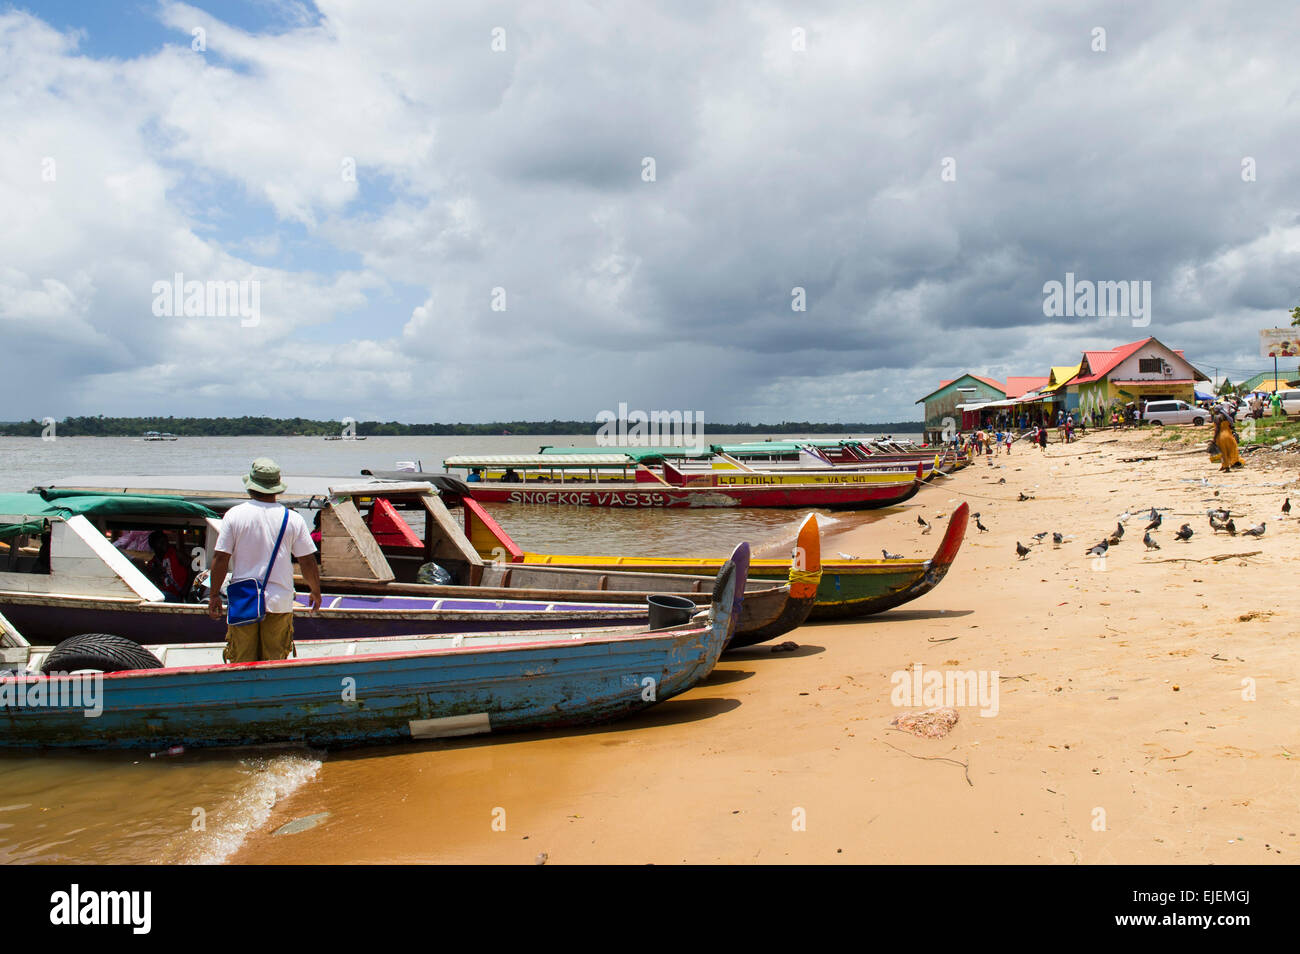 Korjaals on the Marowijne River, Albina, Suriname - Stock Image